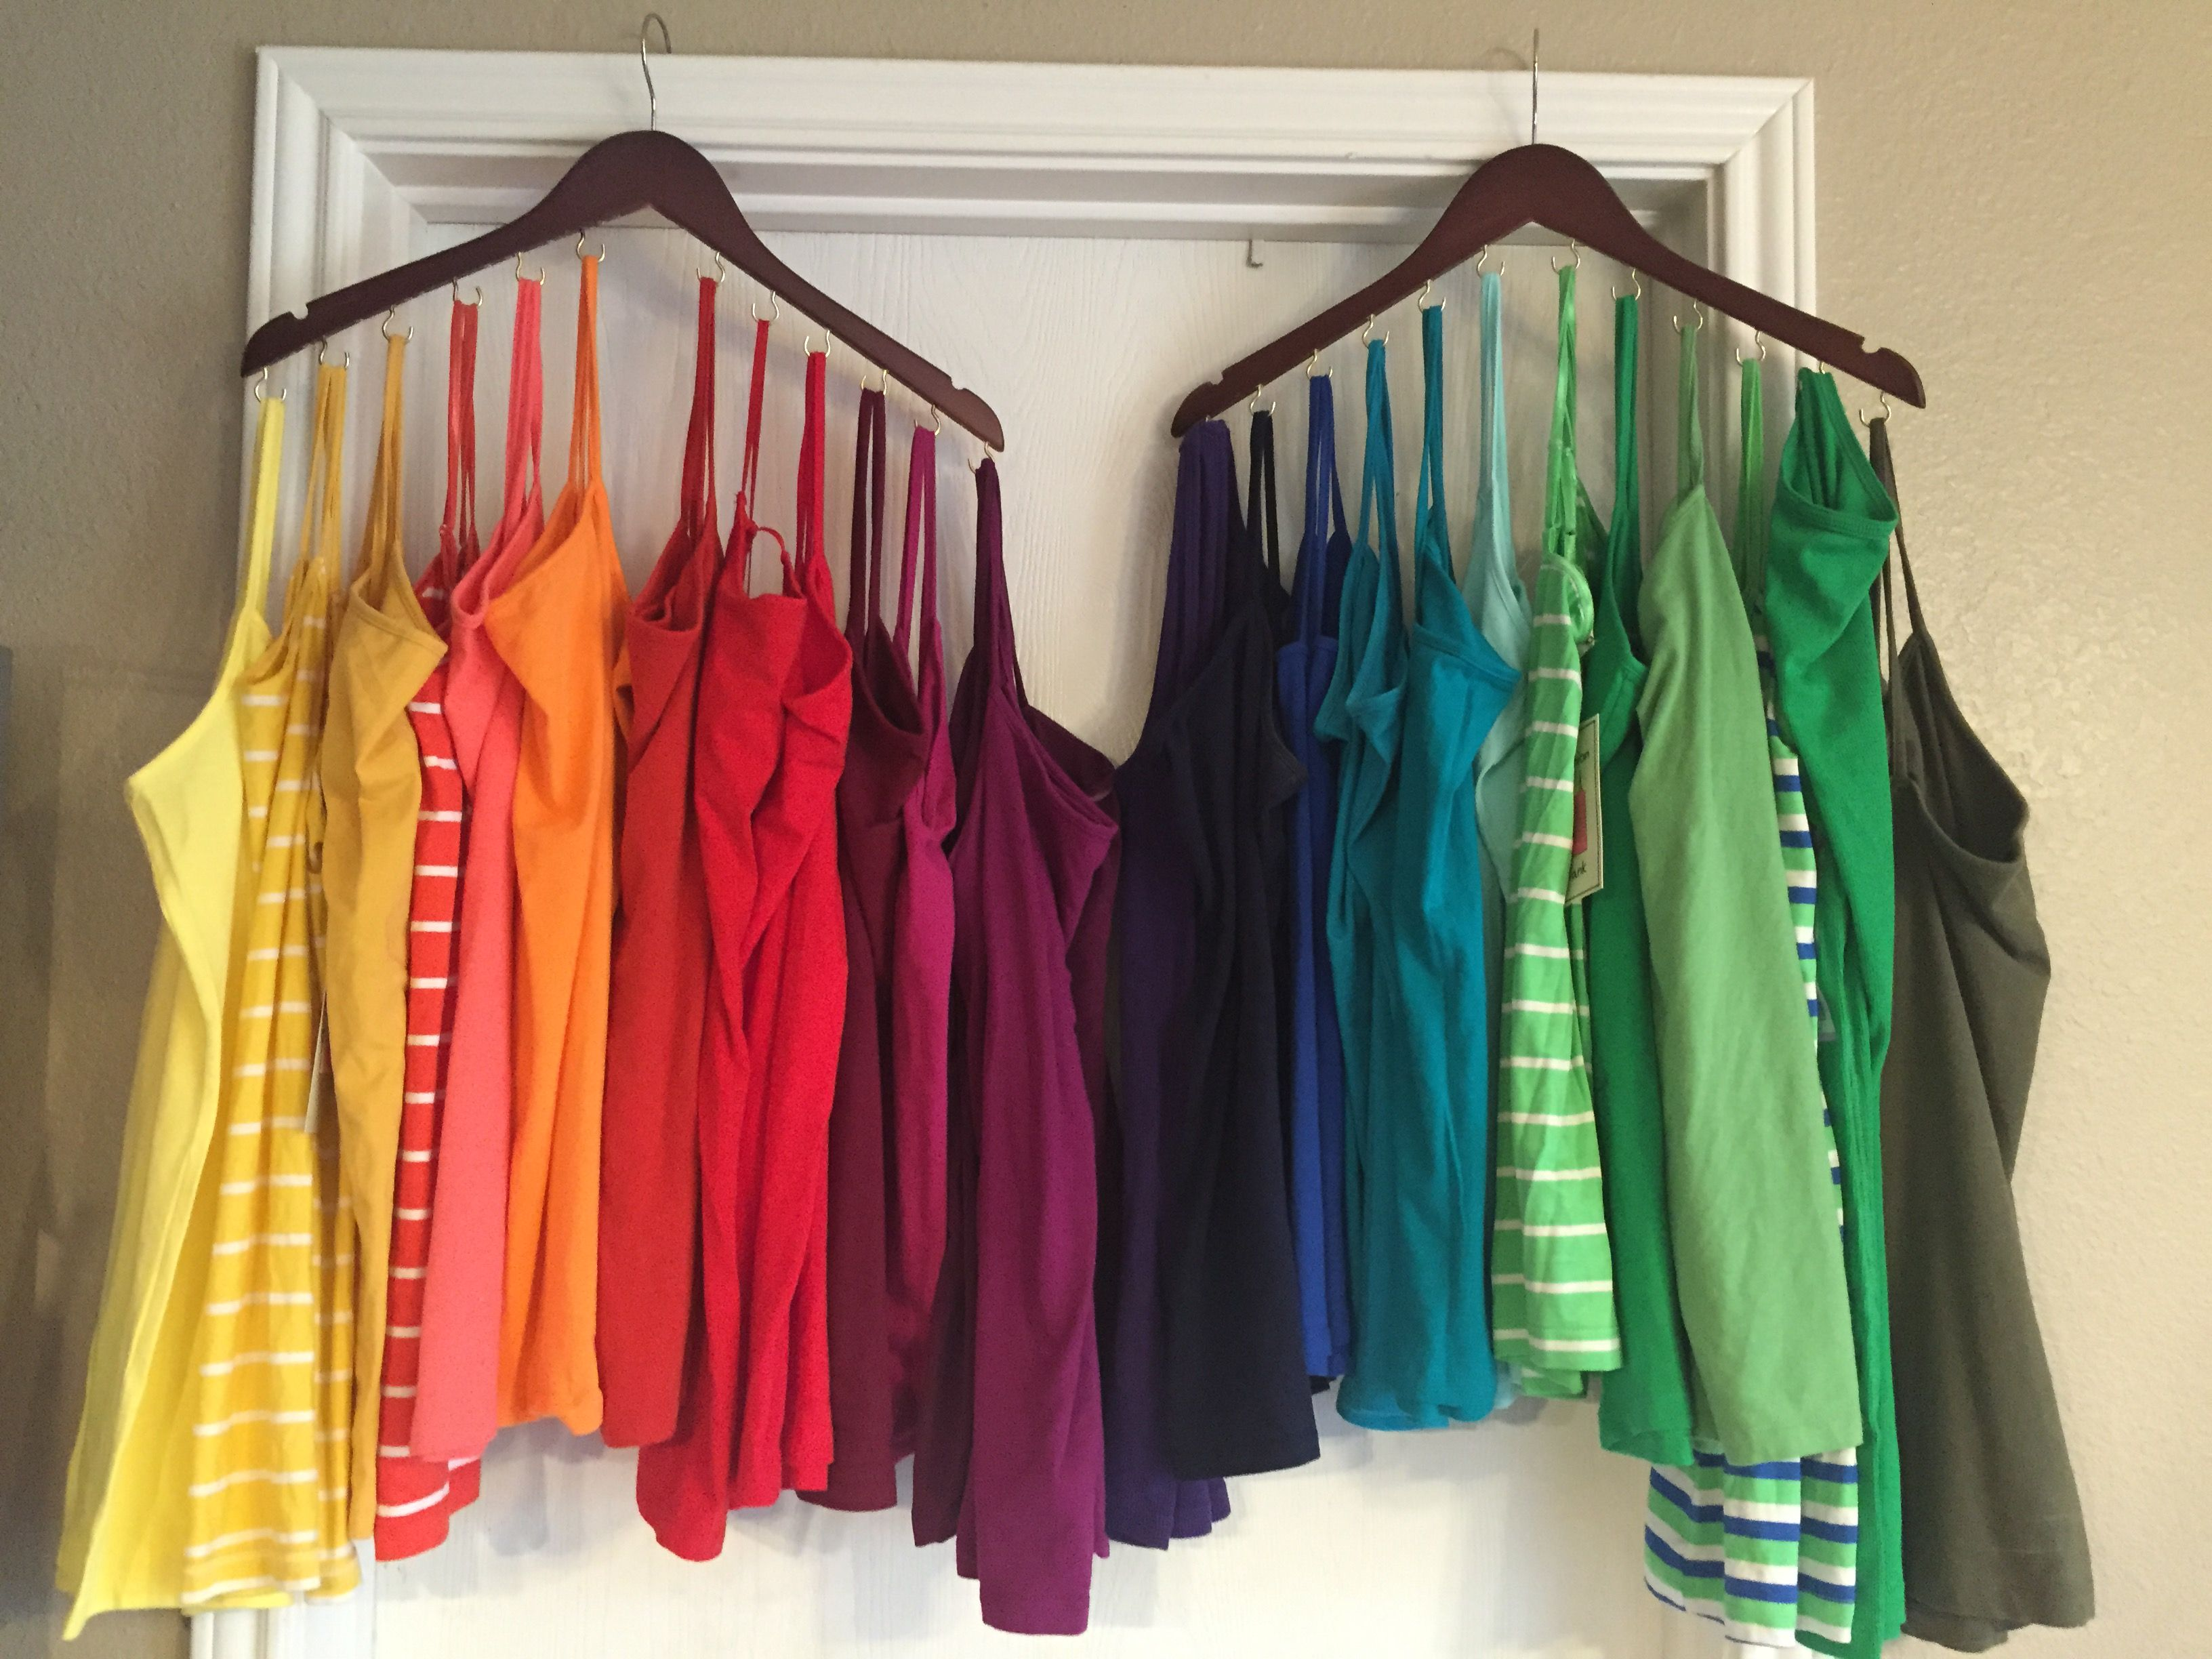 tank top organization organize it organize it pinterest